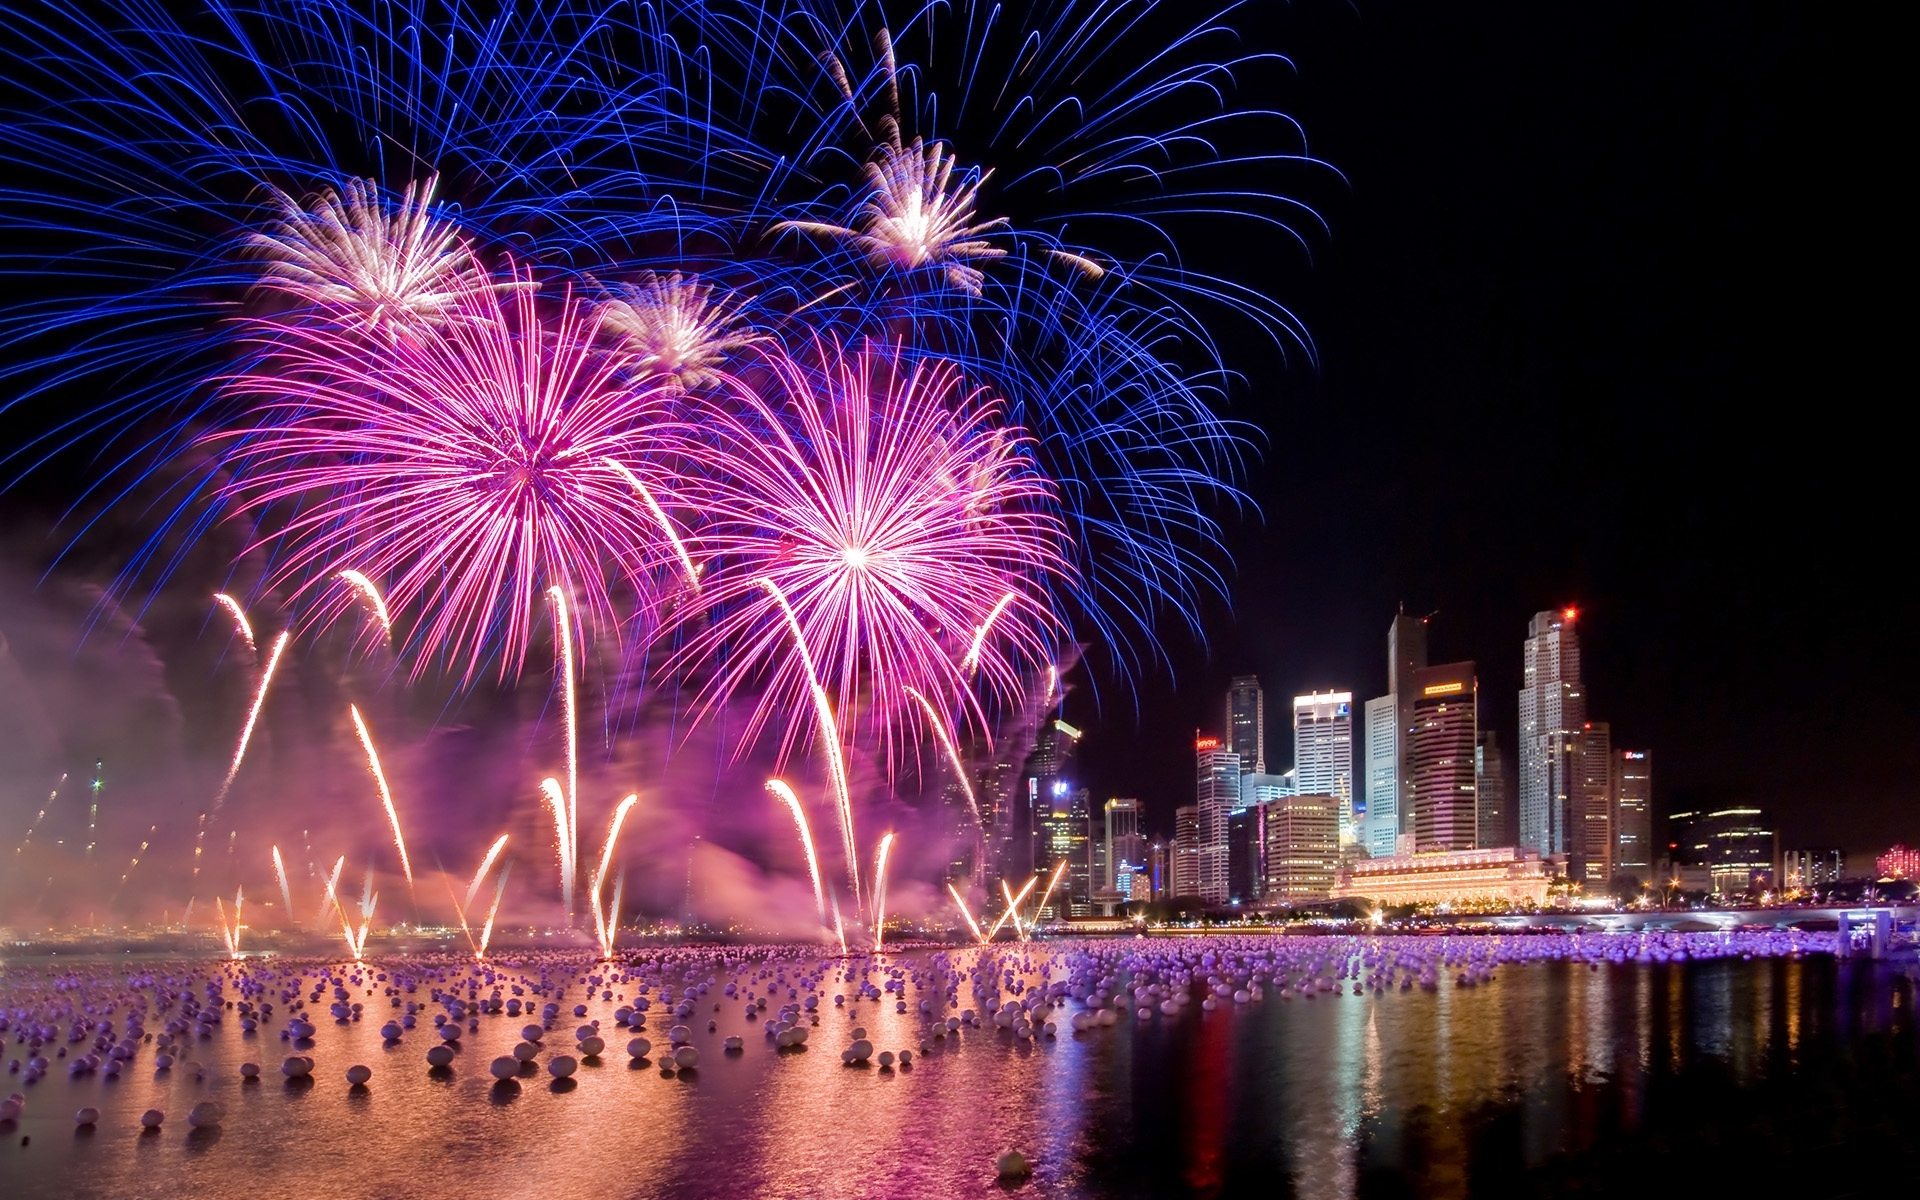 fireworks on new year's eve, singapore full hd wallpaper and